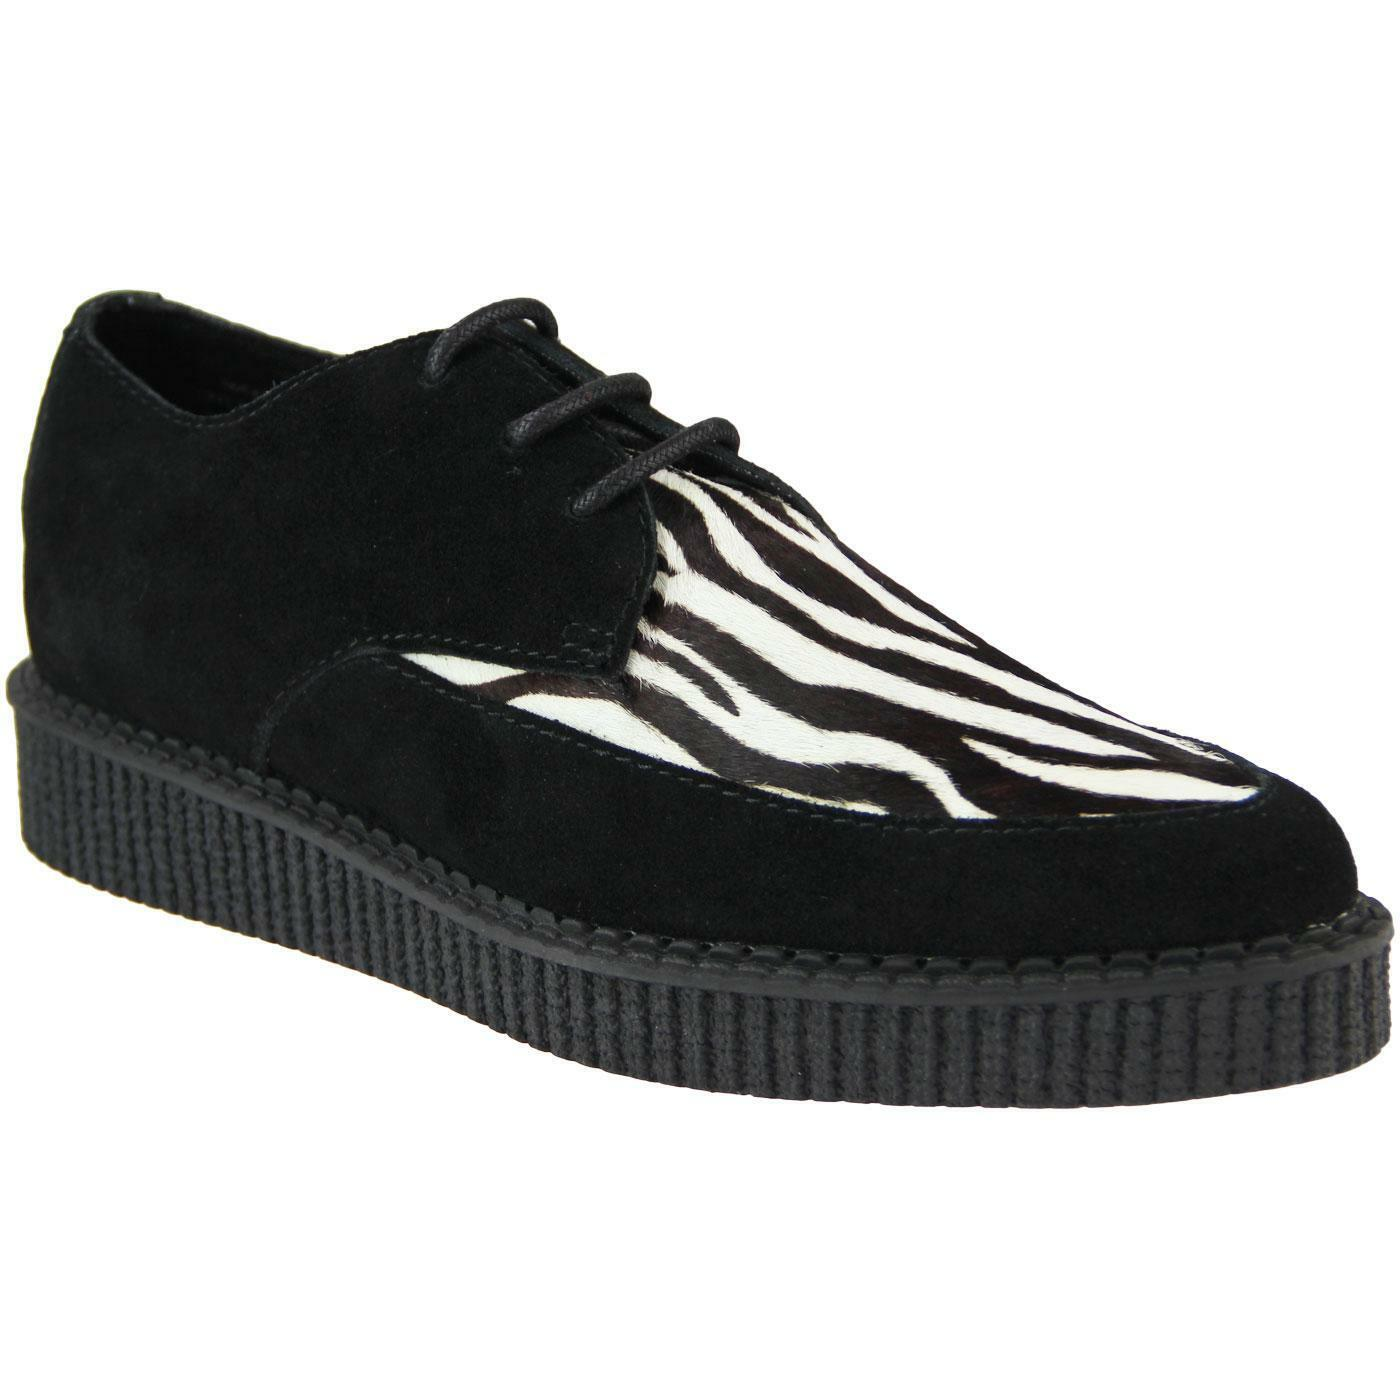 NEW NEW NEW MADCAP WOMENS MOD ROCKABILLY 50s 70s BLACK ZEBRA CREEPERS SHOES ROCKET 32402 0d7ed5